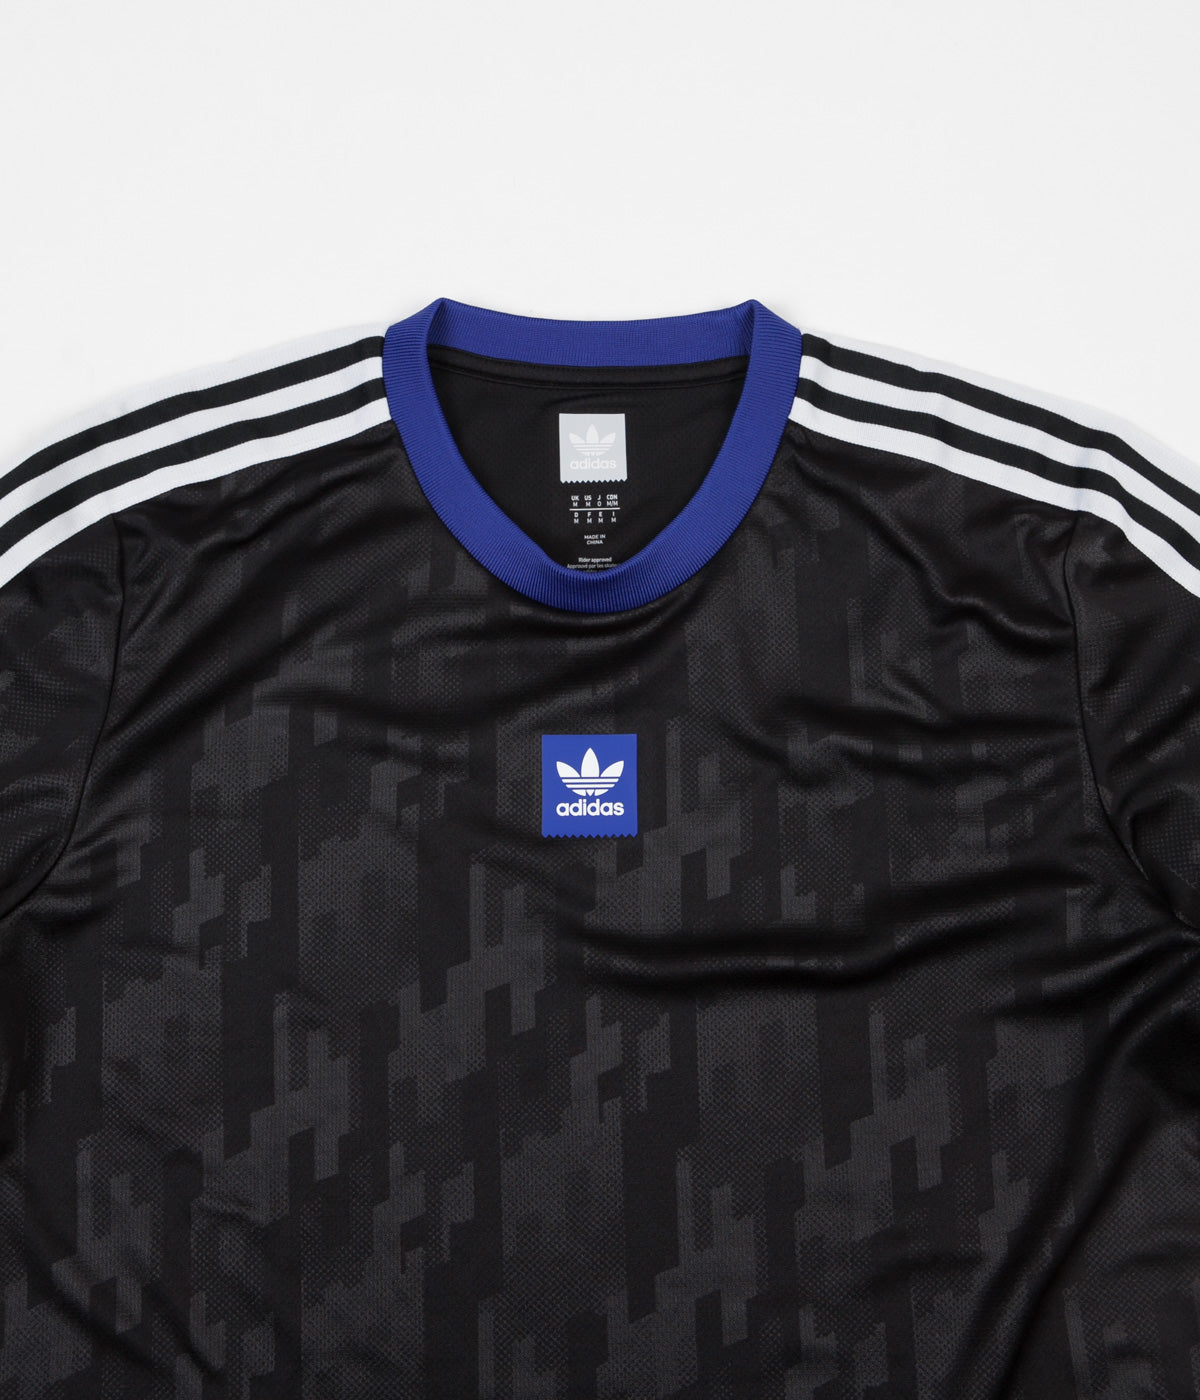 Adidas Dodson Jersey - Black / Active Blue / White